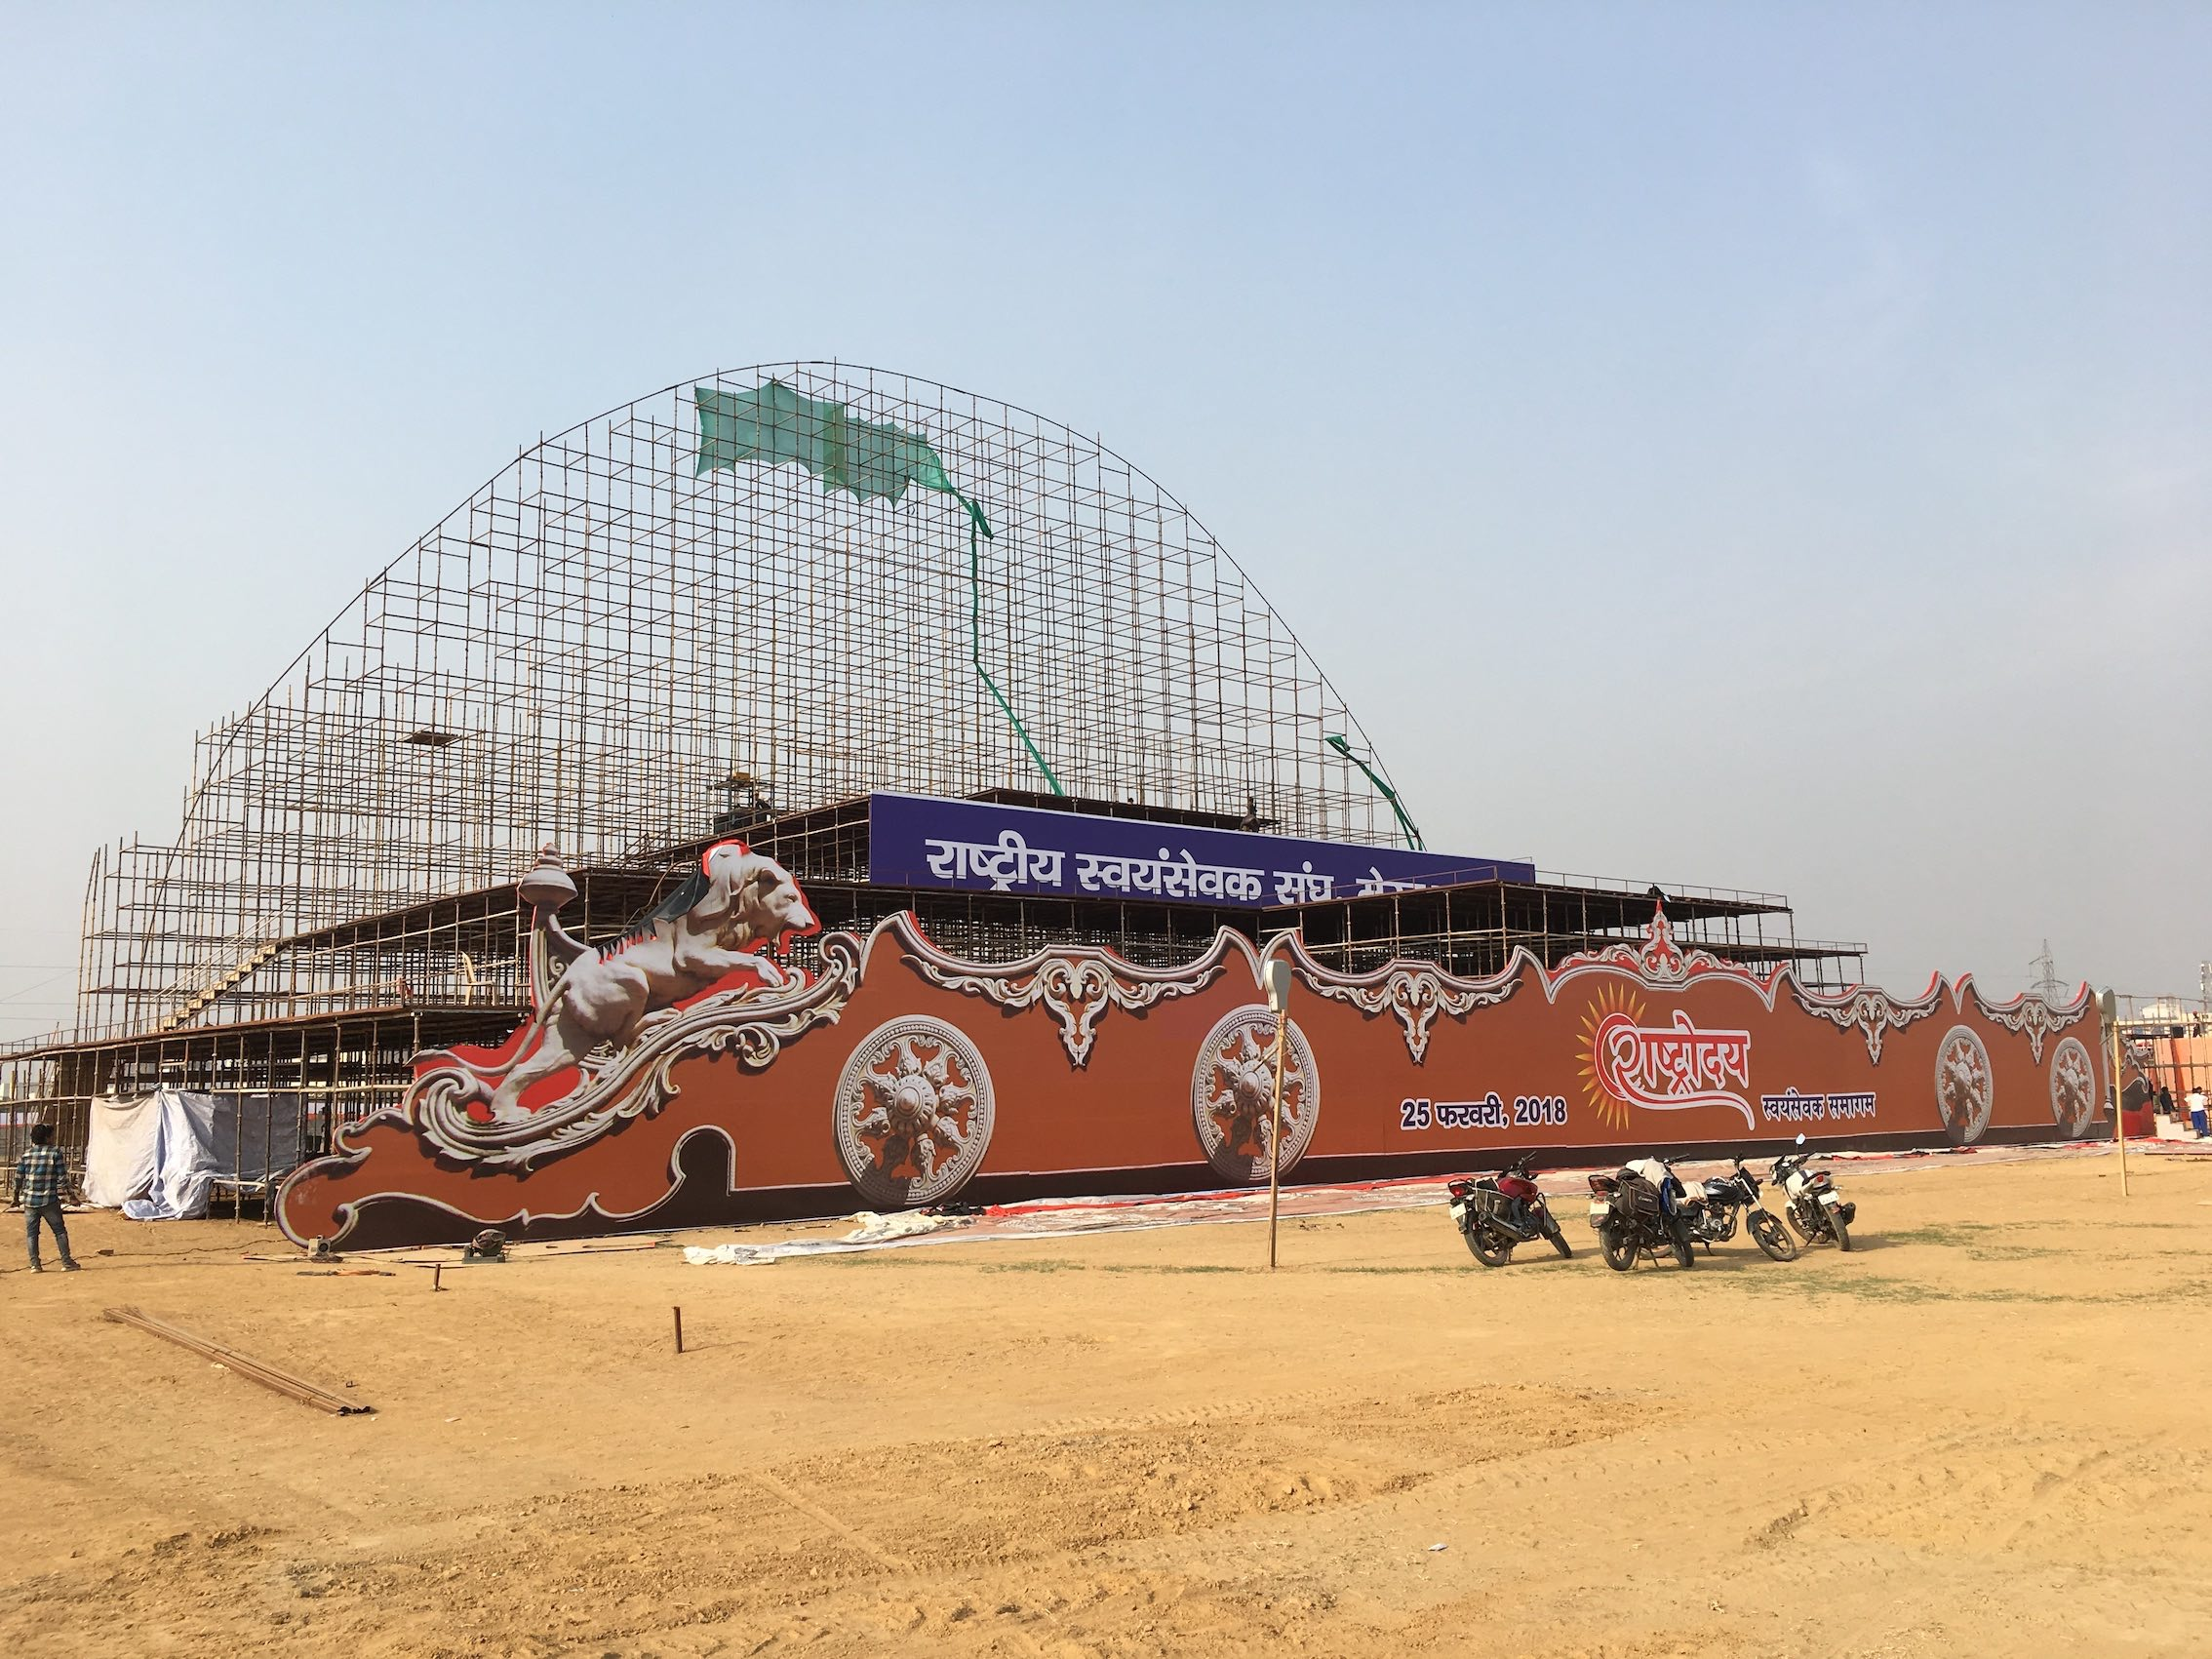 Stage under construction for the RSS mega meet in Meerut. Credit: Munish Kumar